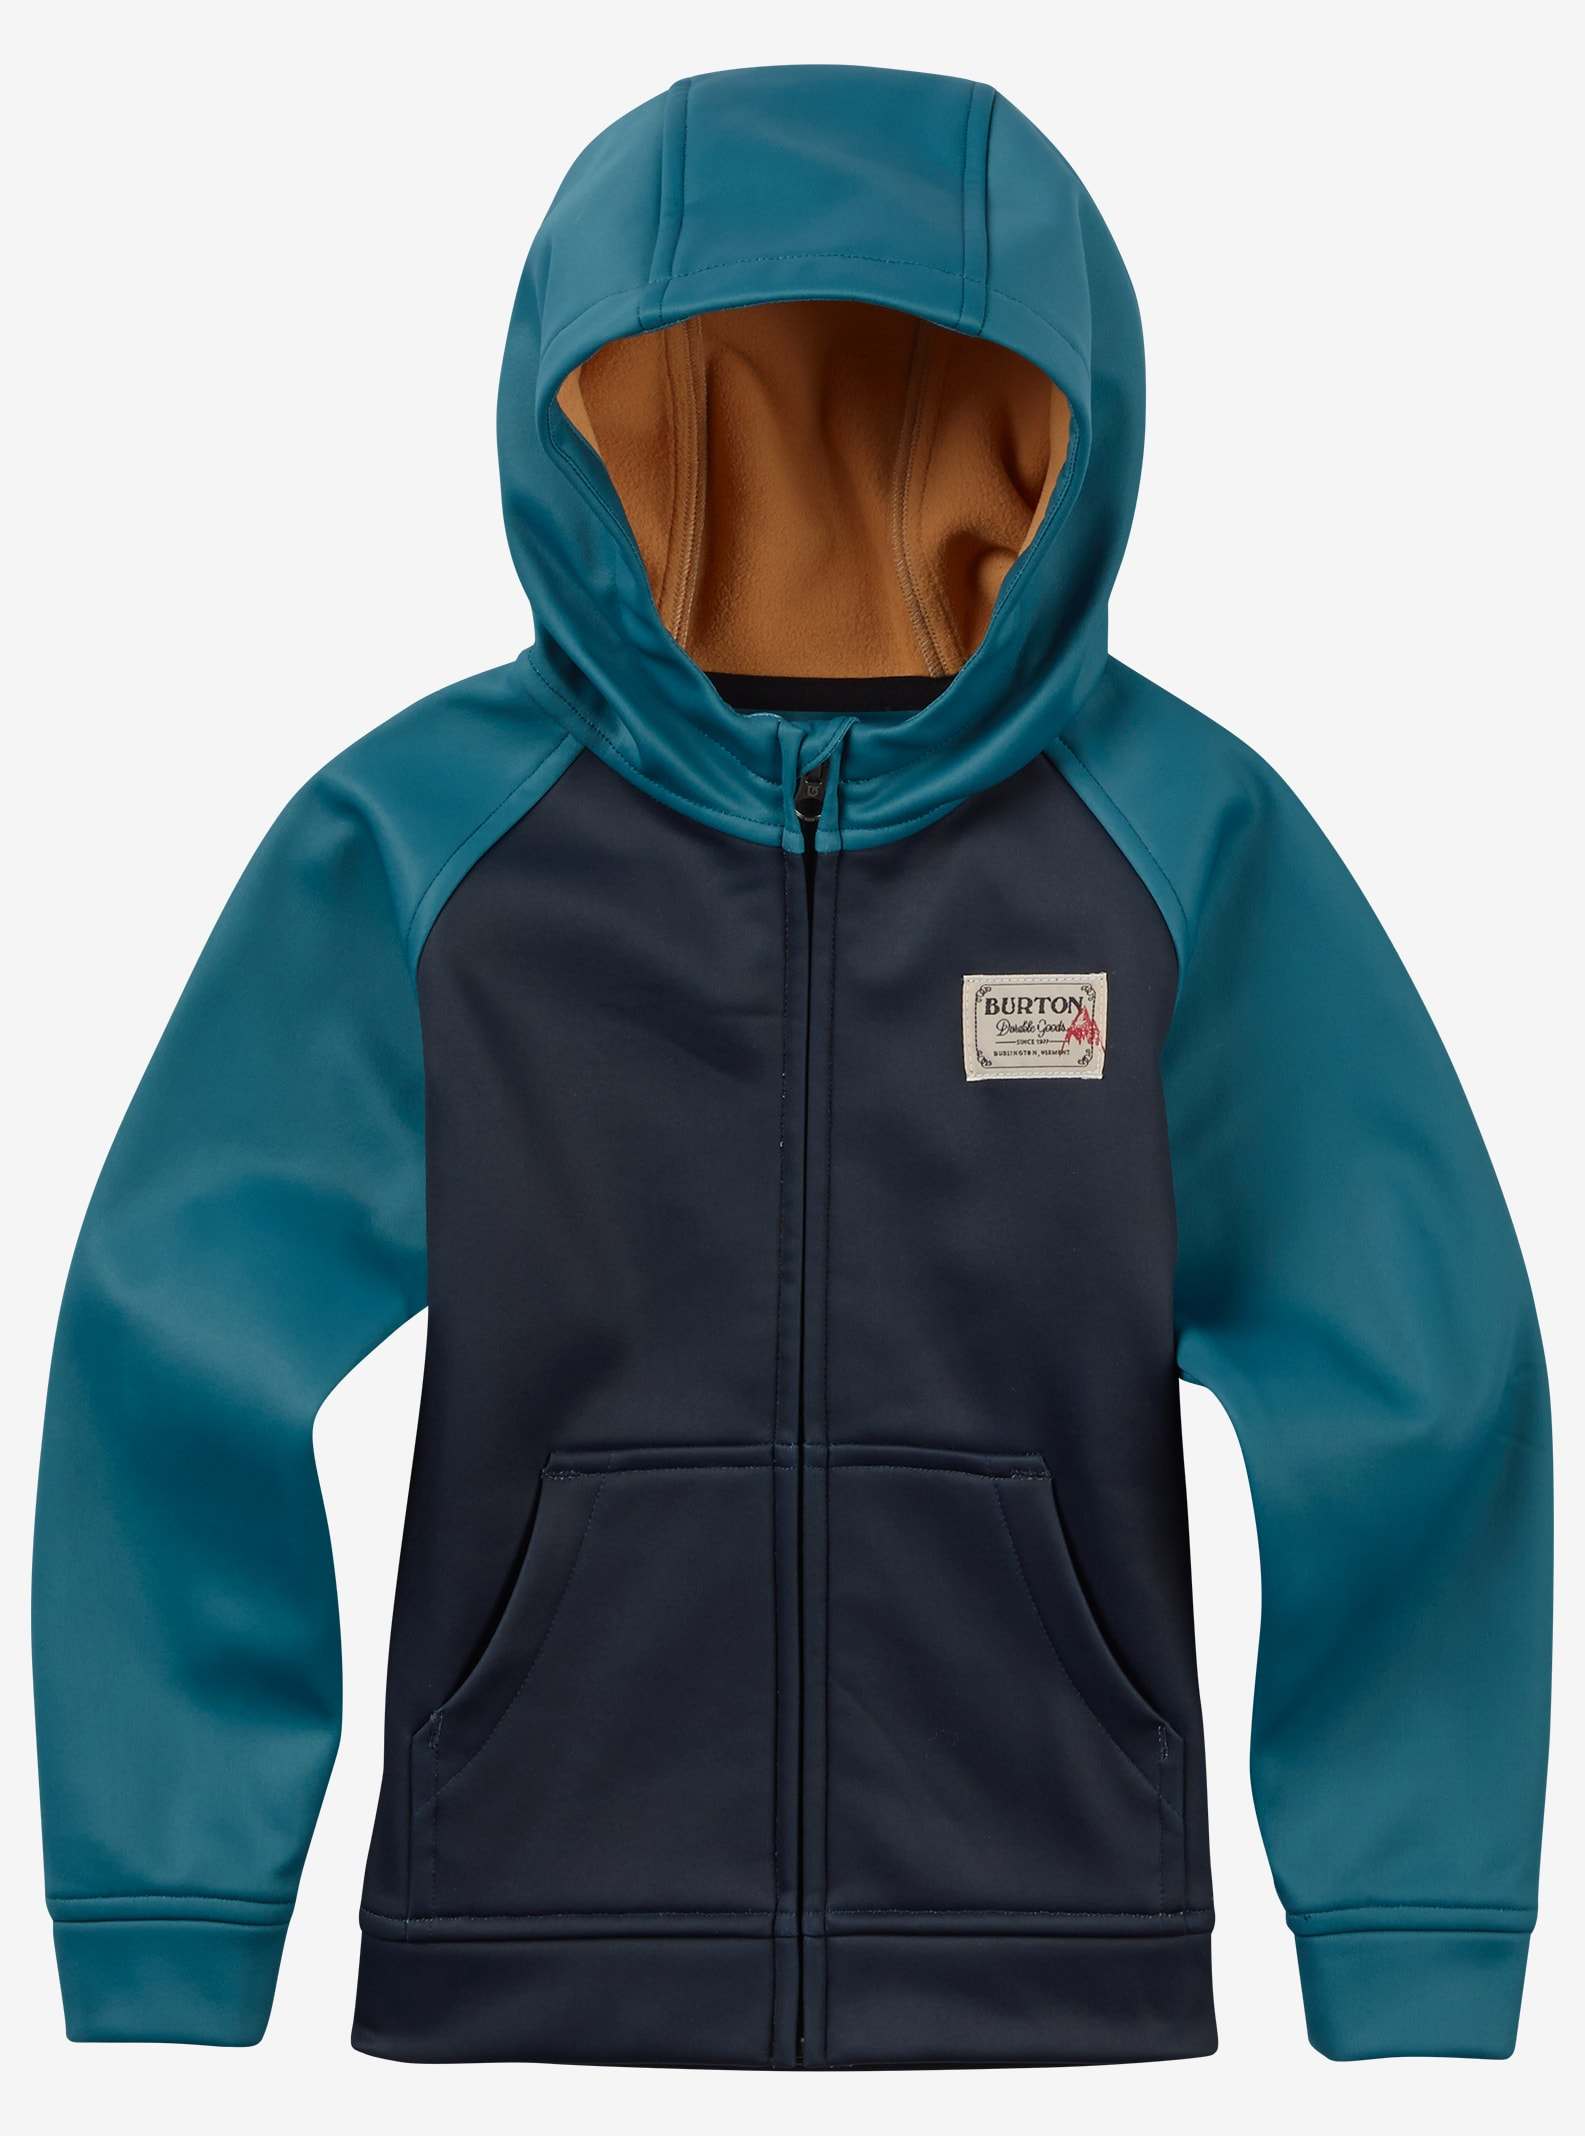 Burton Boys' Mini Bonded Full-Zip Hoodie shown in Eclipse / Fanfare